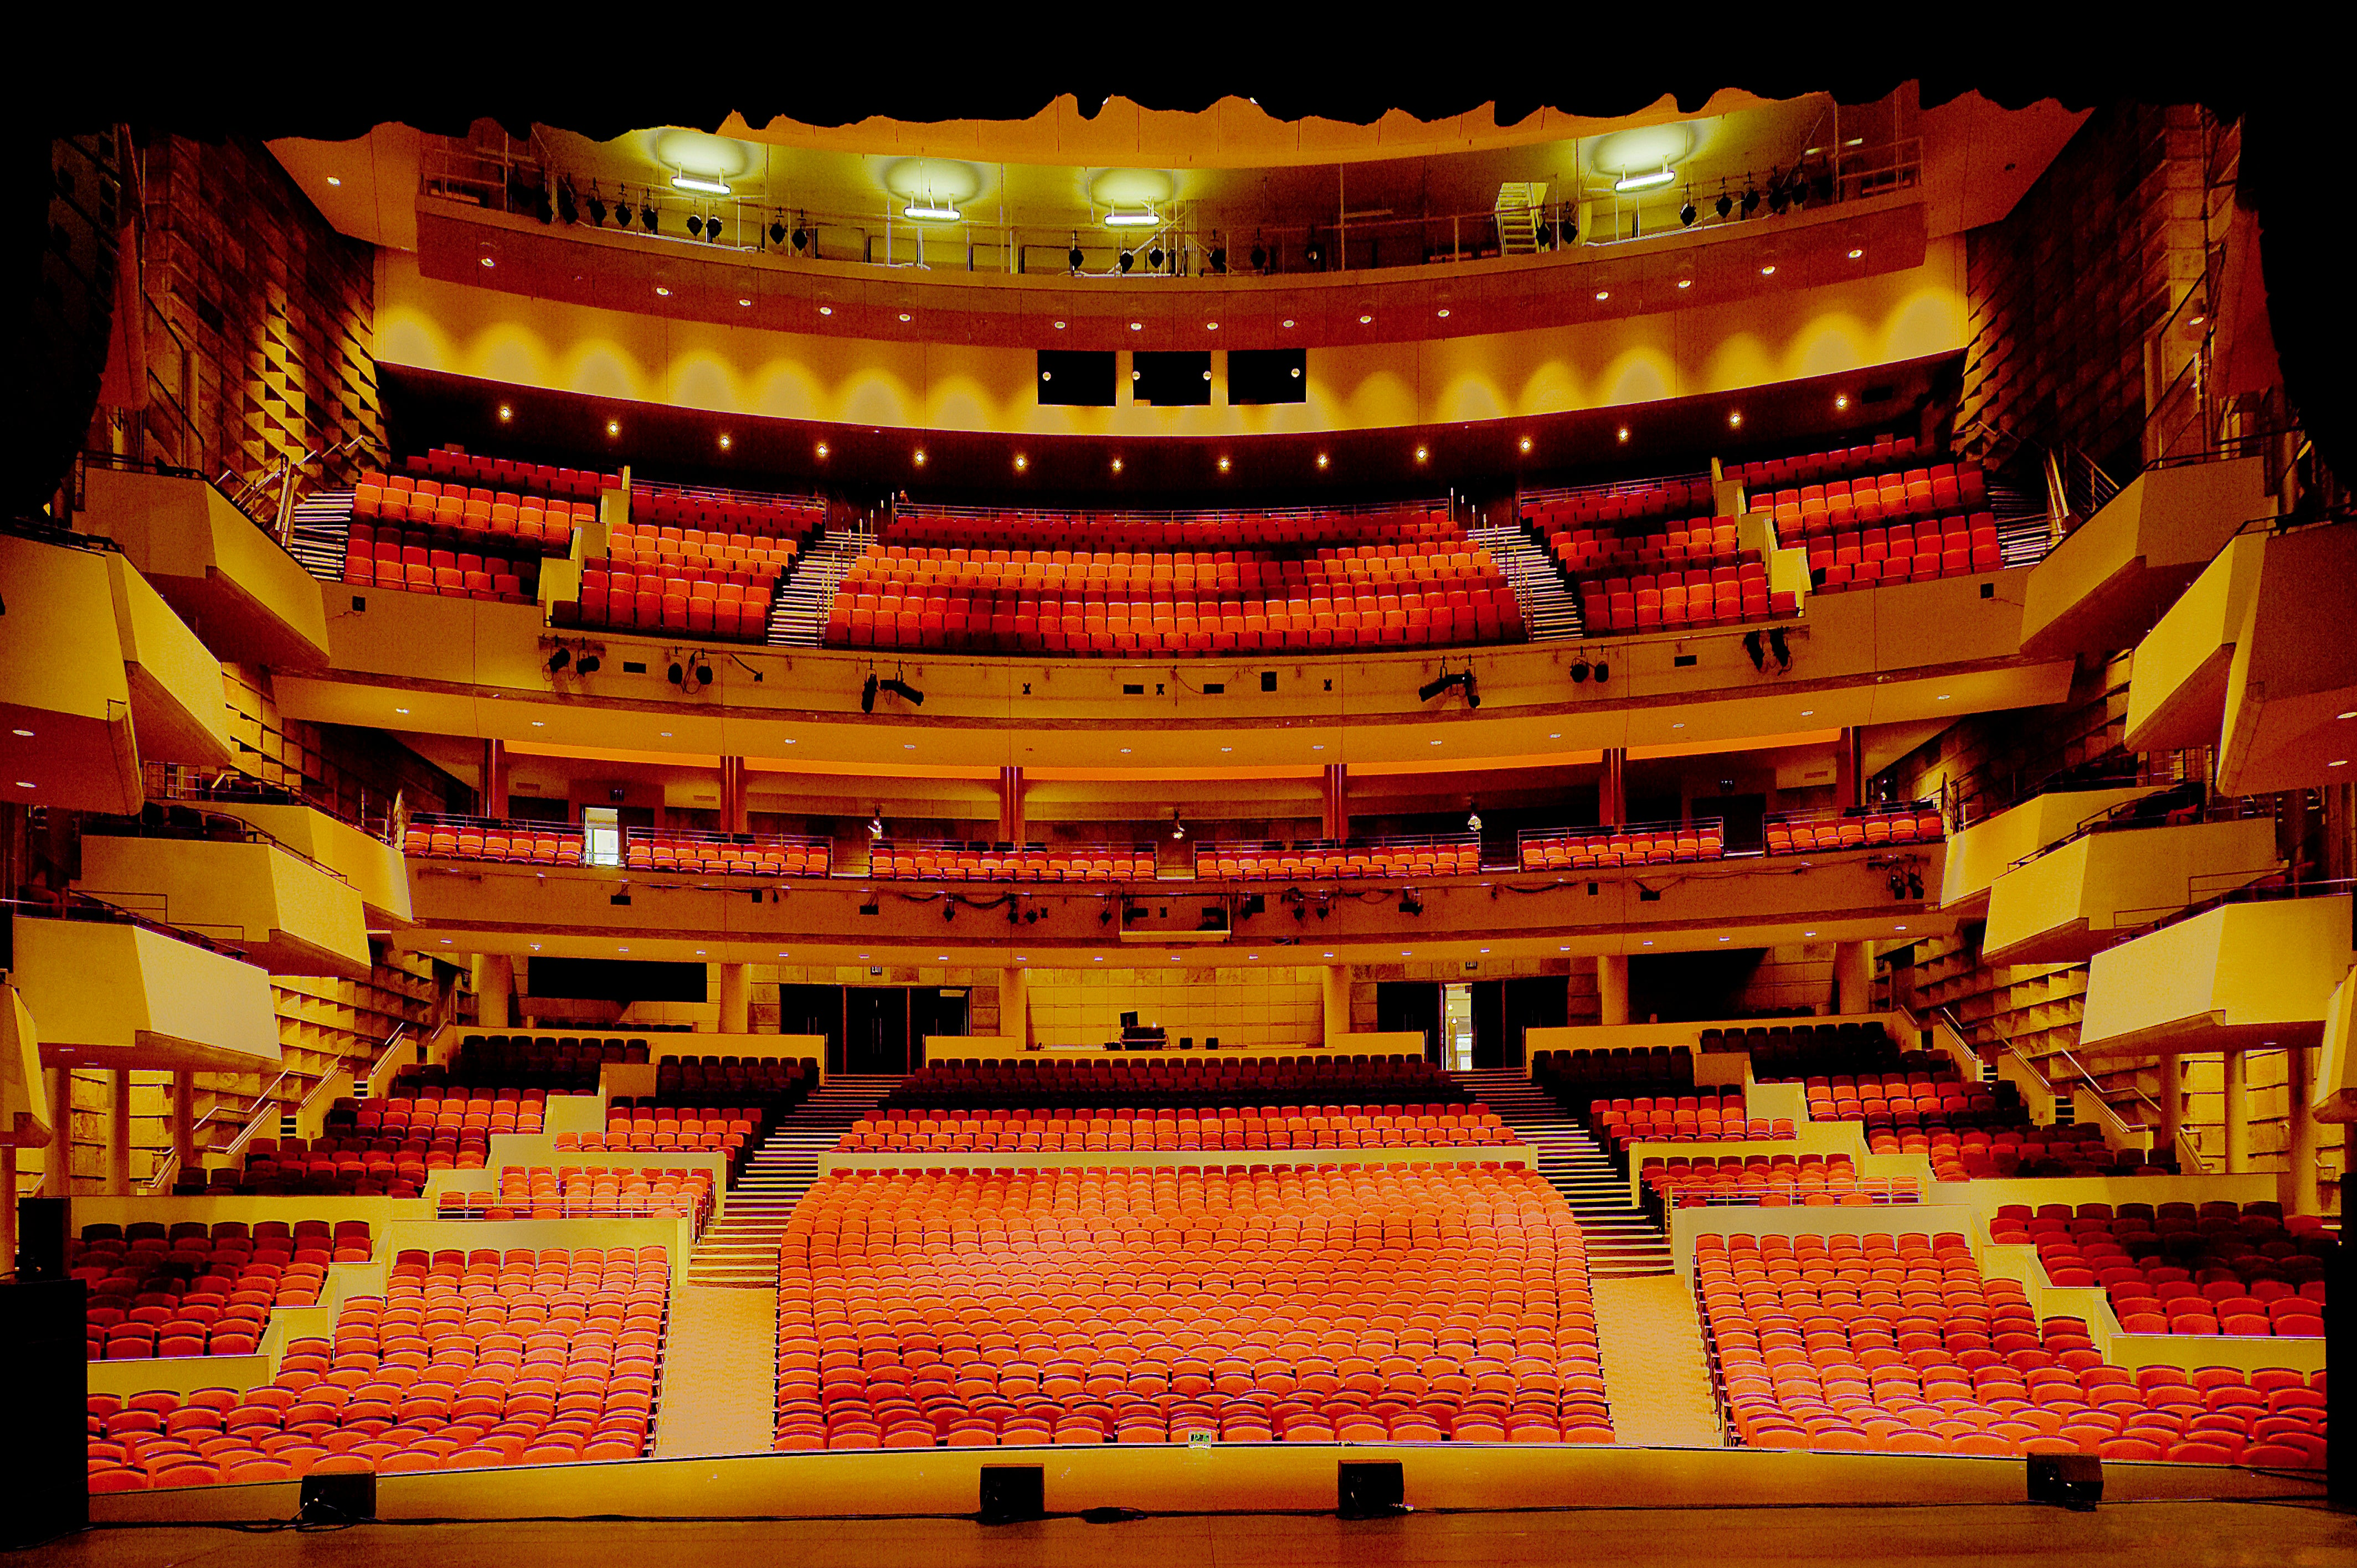 PHO - Buell House from Stage - Photo by Don Pietzman.JPG